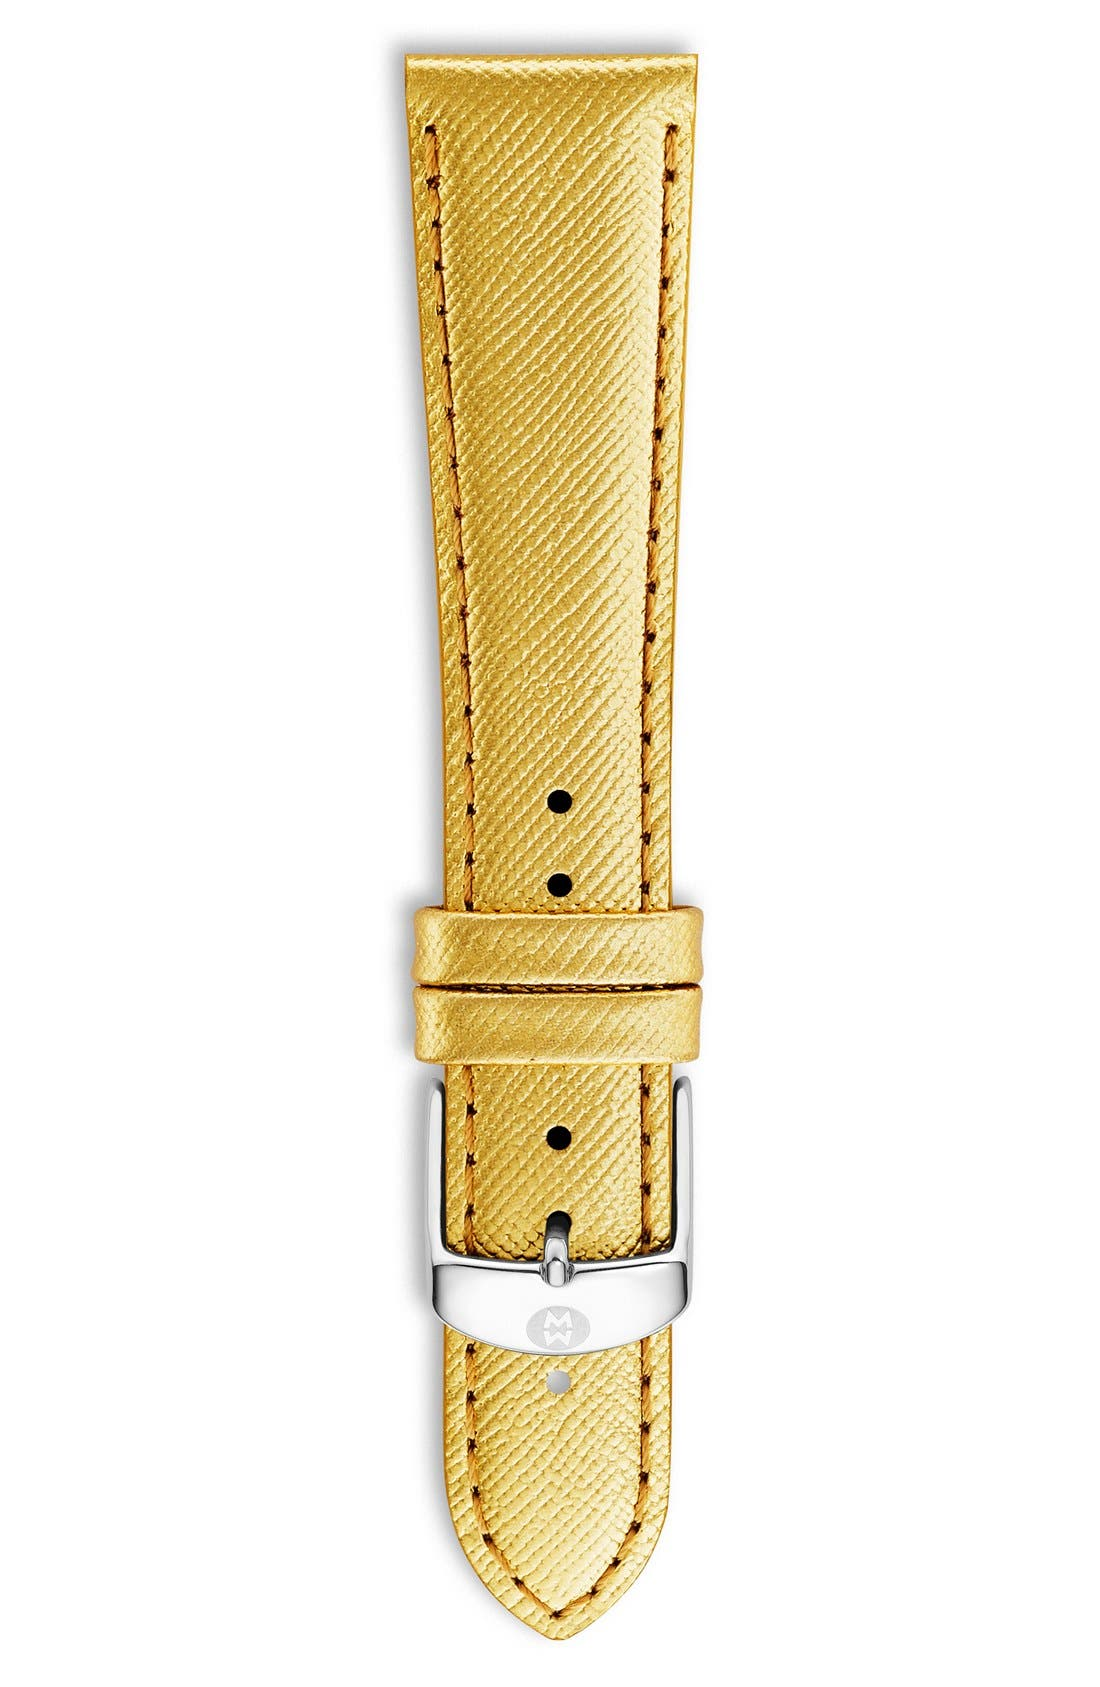 20mm Metallic Leather Watch Strap,                             Main thumbnail 1, color,                             Metallic Gold